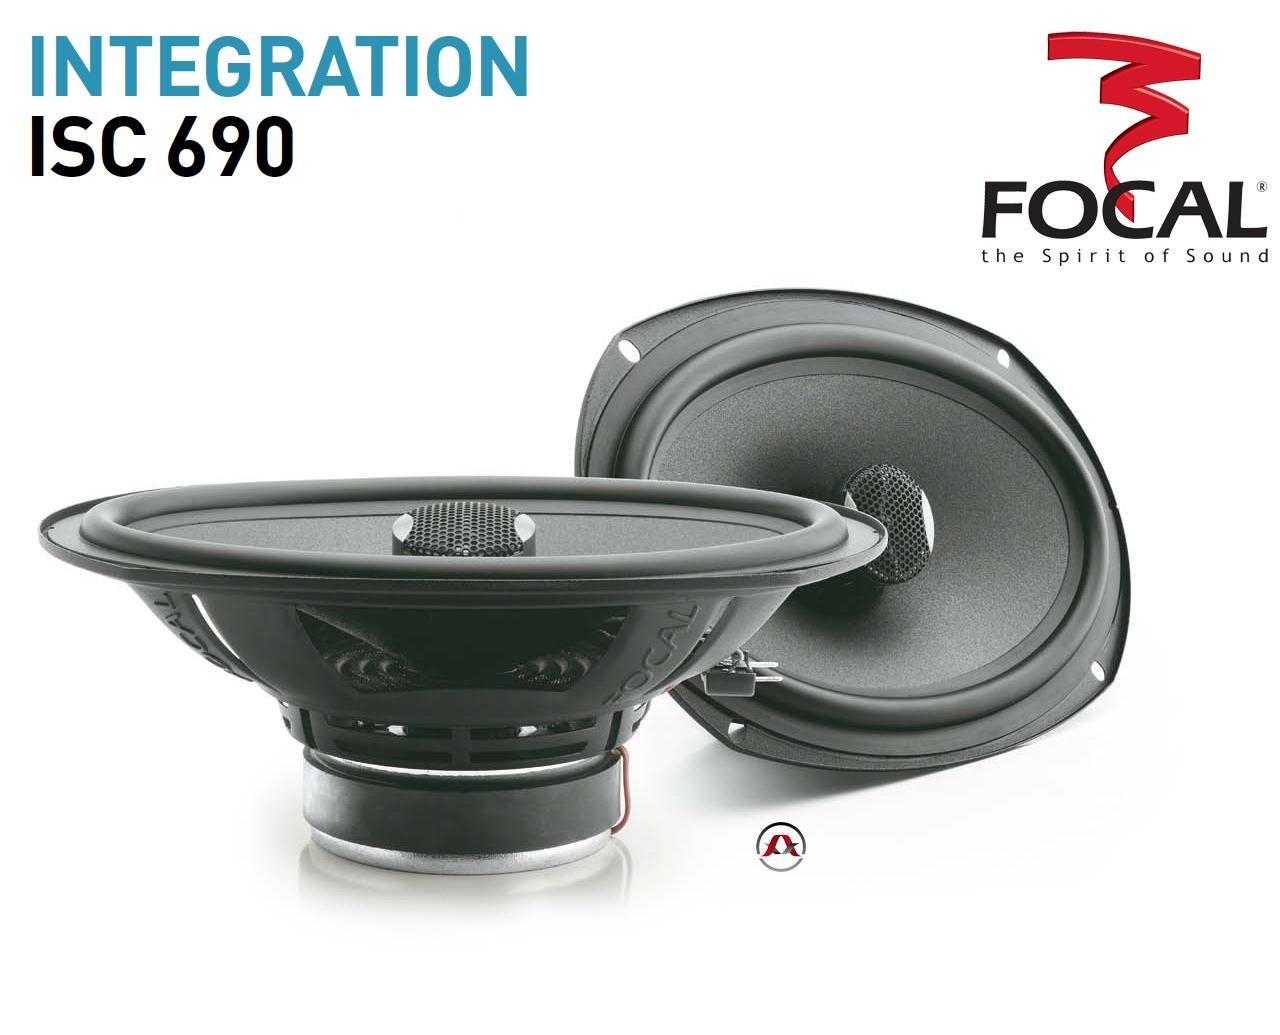 Focal Integration ISC 690 6' x 9' 2-way car speakers Focal Press KitISC690